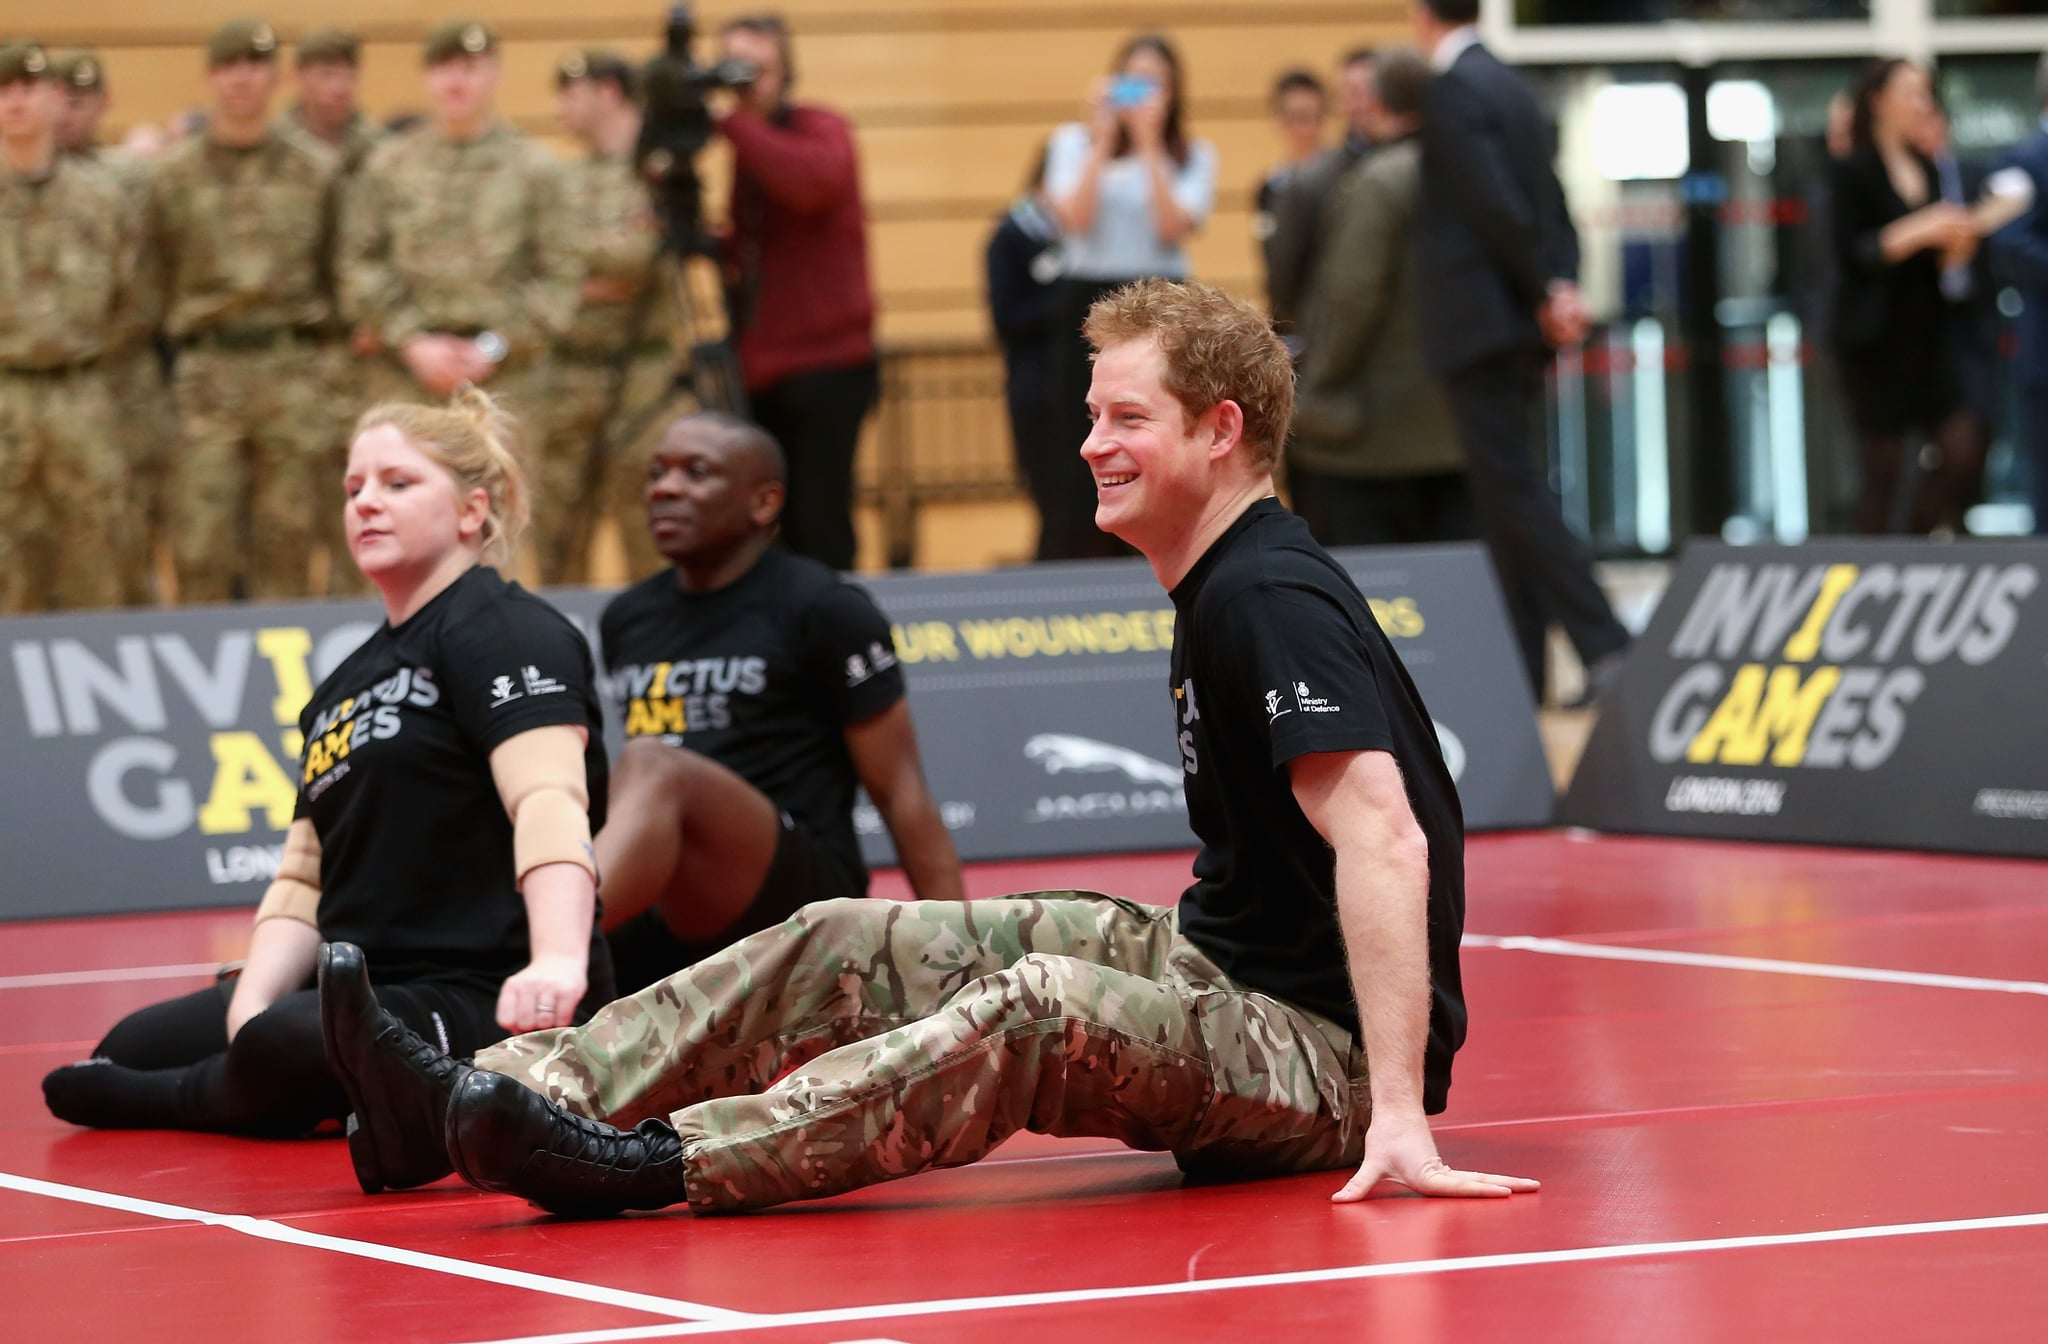 Prince Harry Brings a Great American Idea to the UK